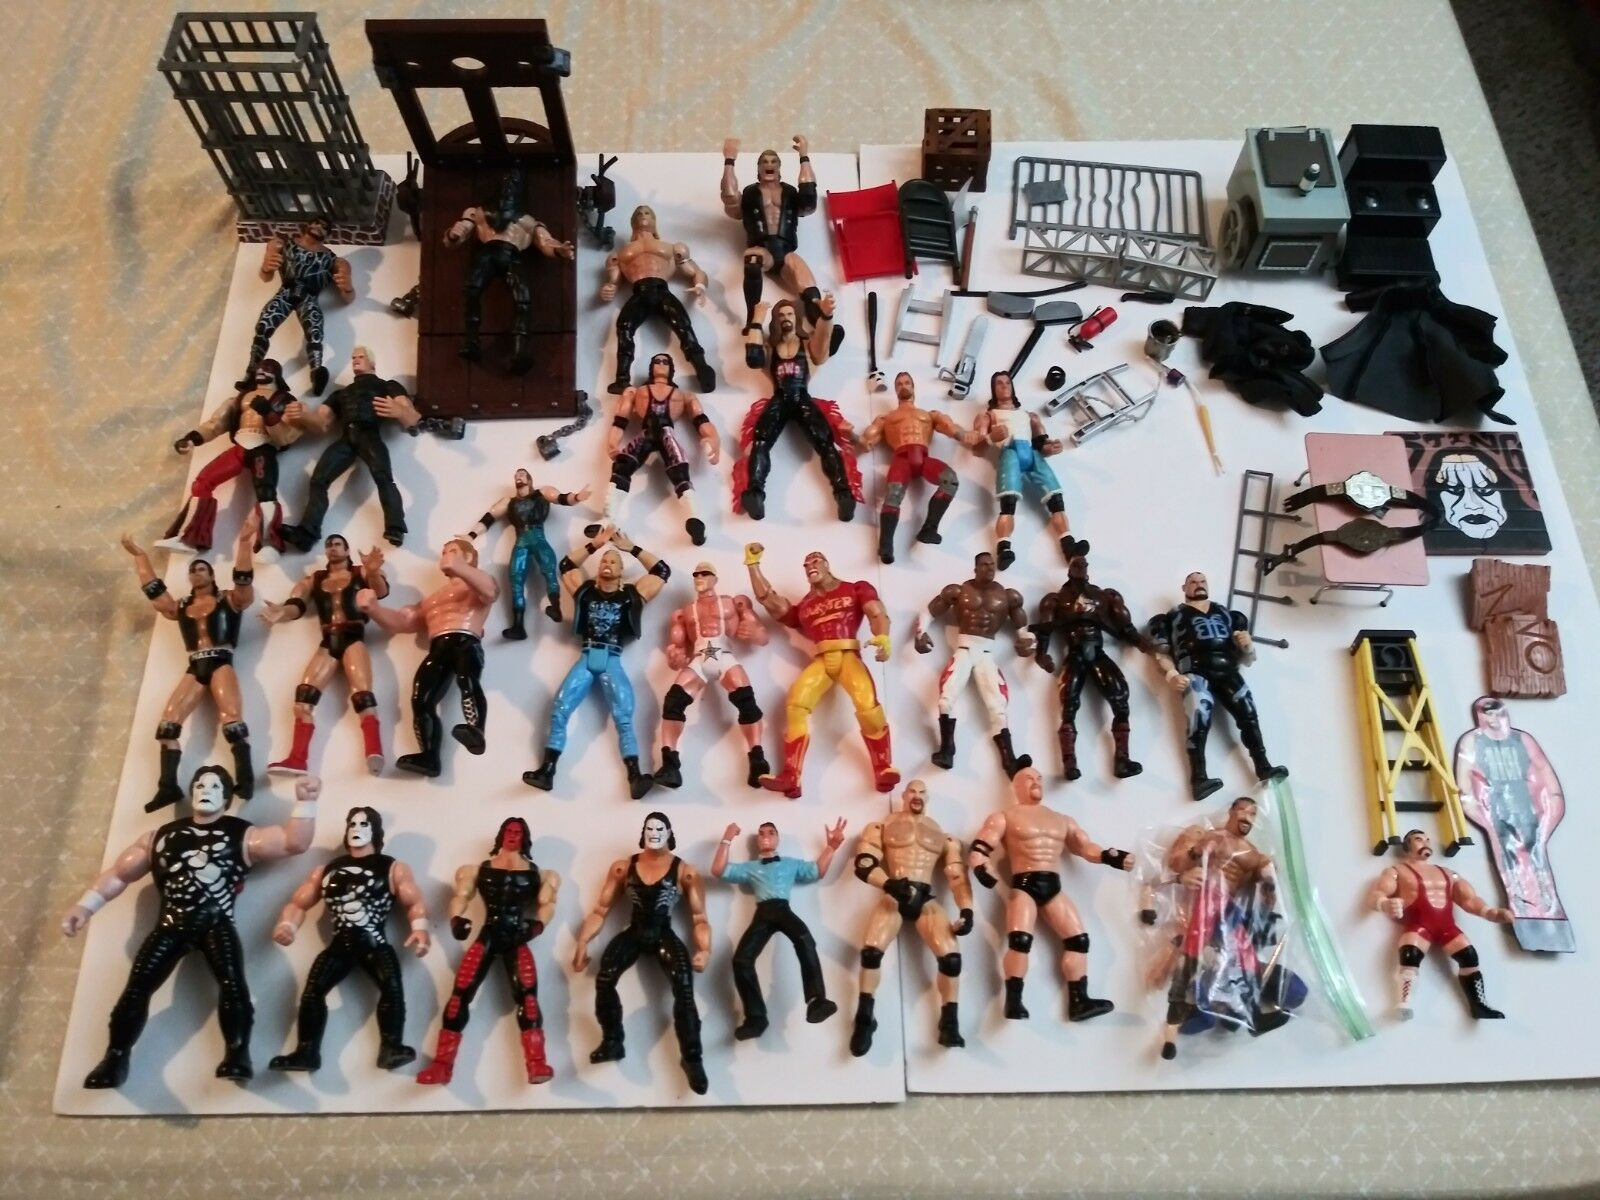 WCW FIGURE LOT, STING, HOGAN, goldBERG, NASH & MORE W ACCESSORIES MARVEL WWF WWE